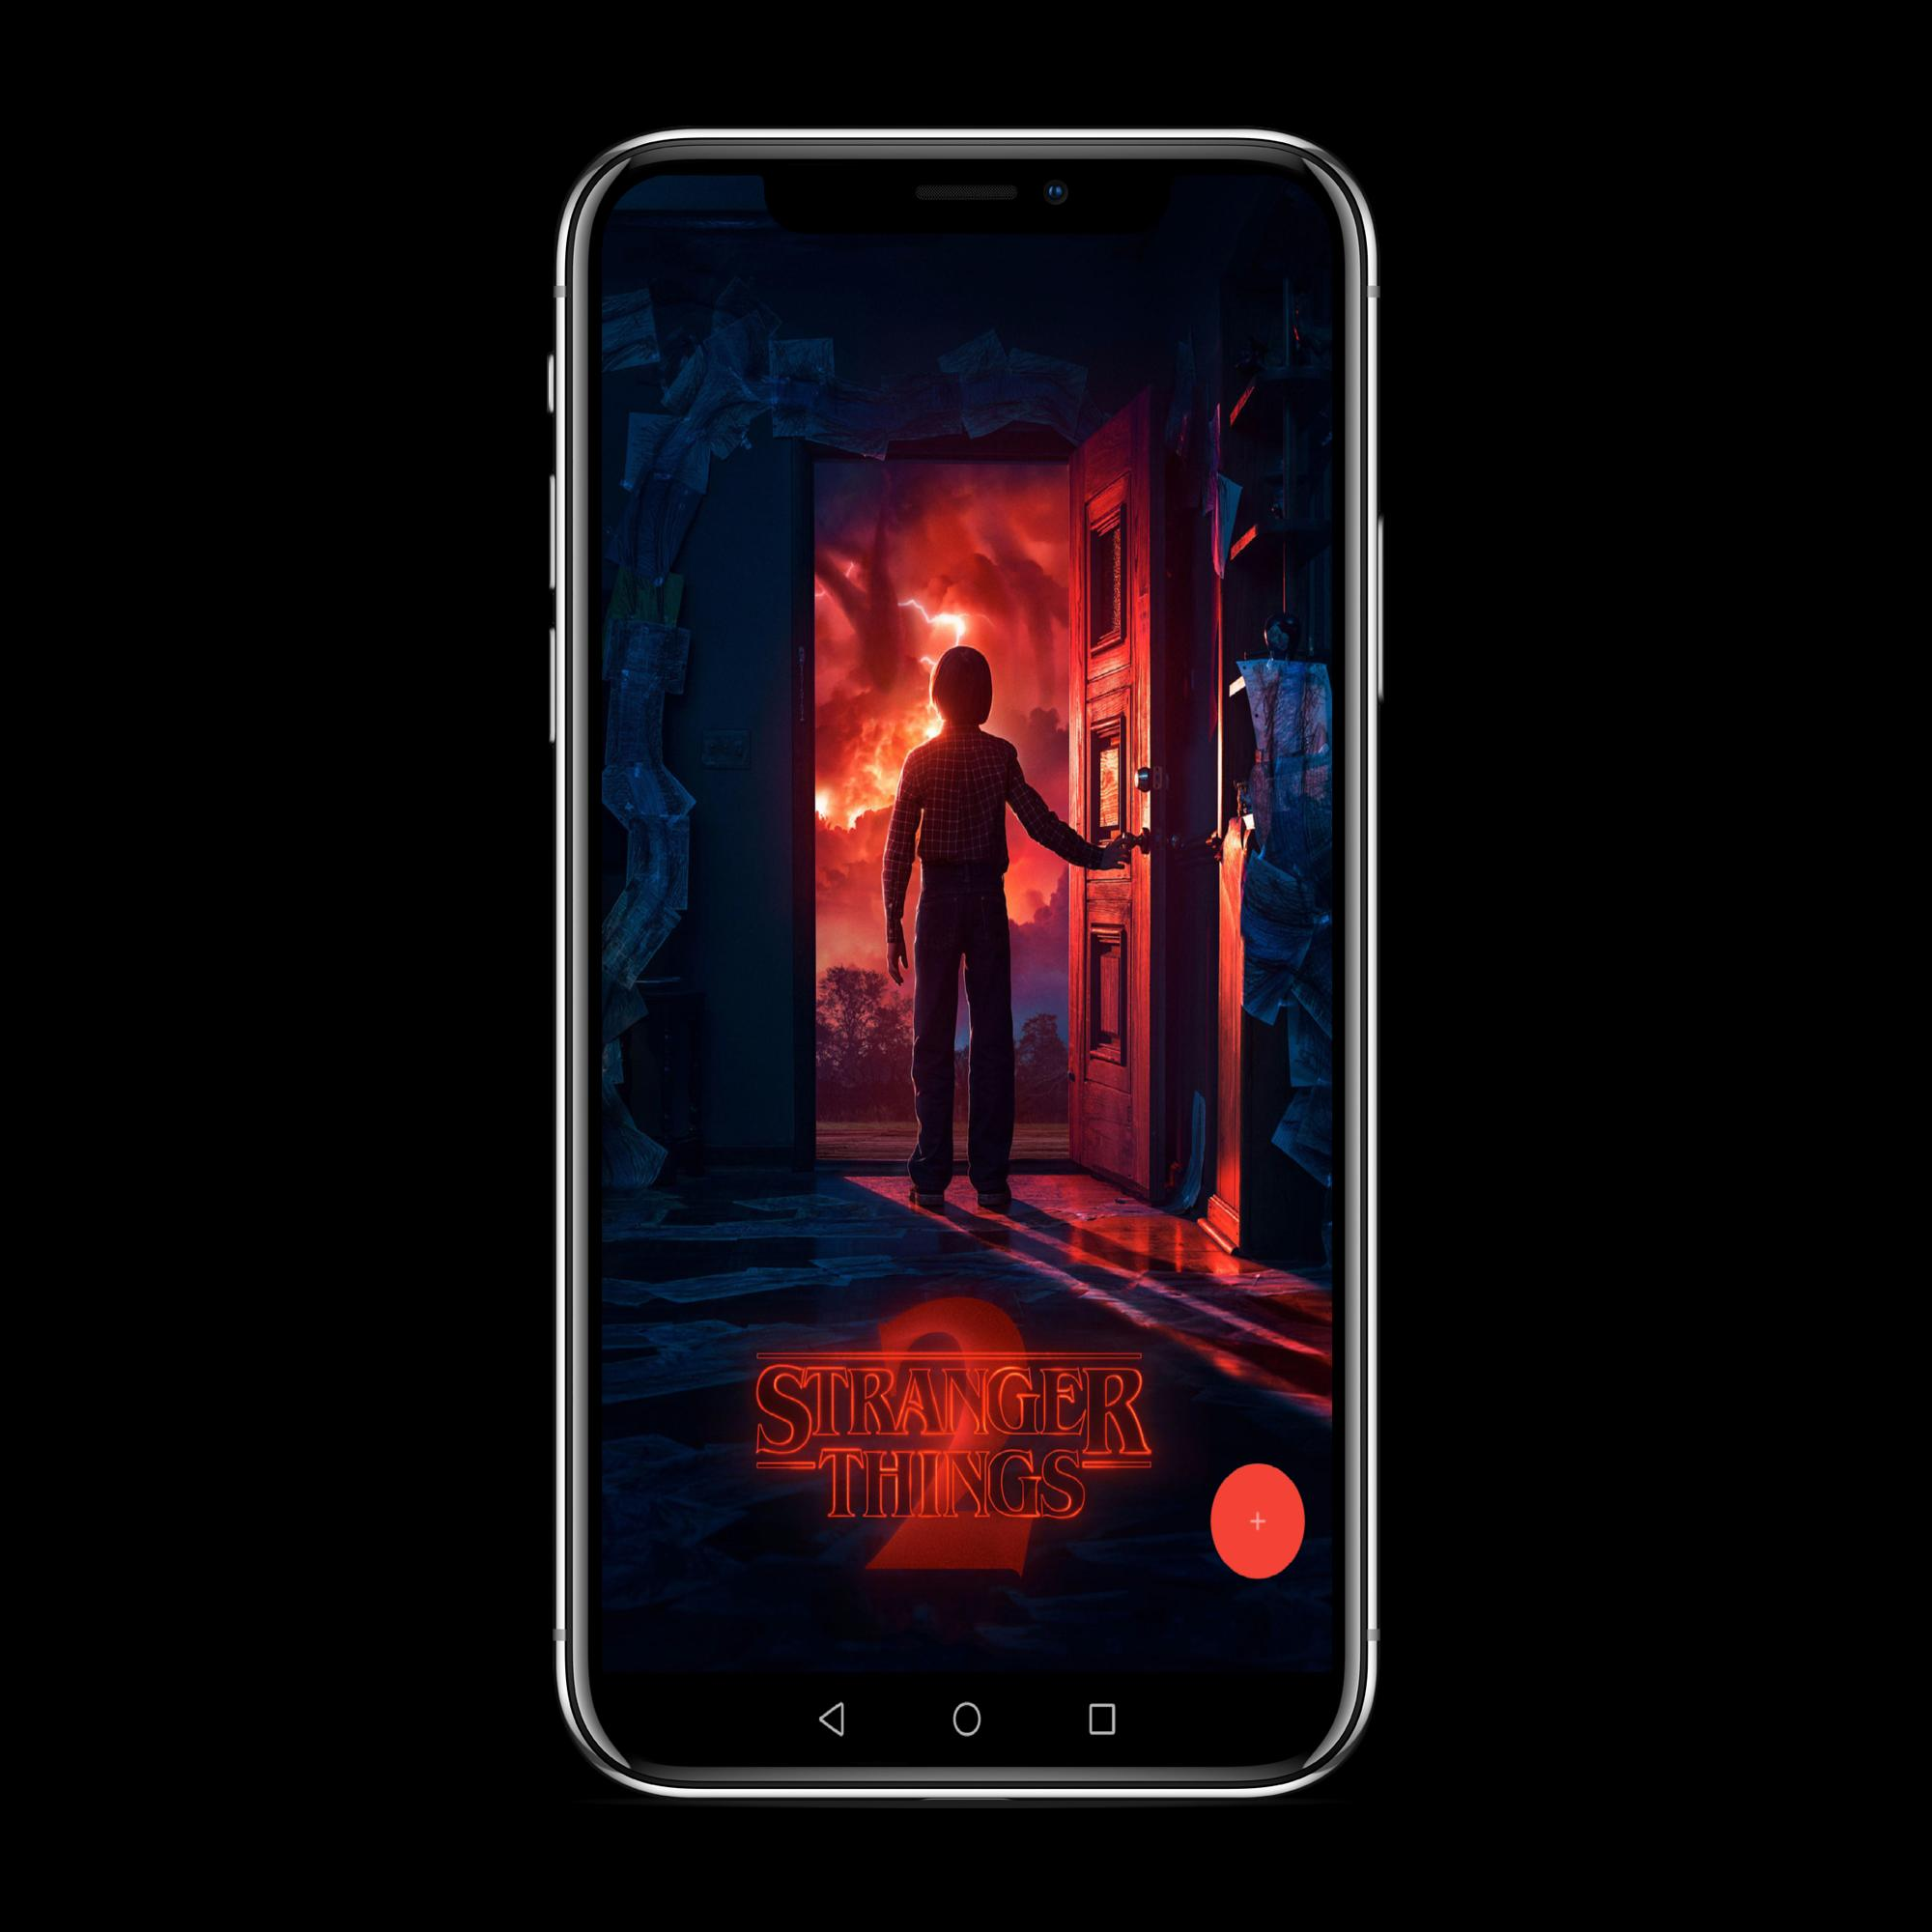 Stranger Things 2 Wallpapers For Android Apk Download